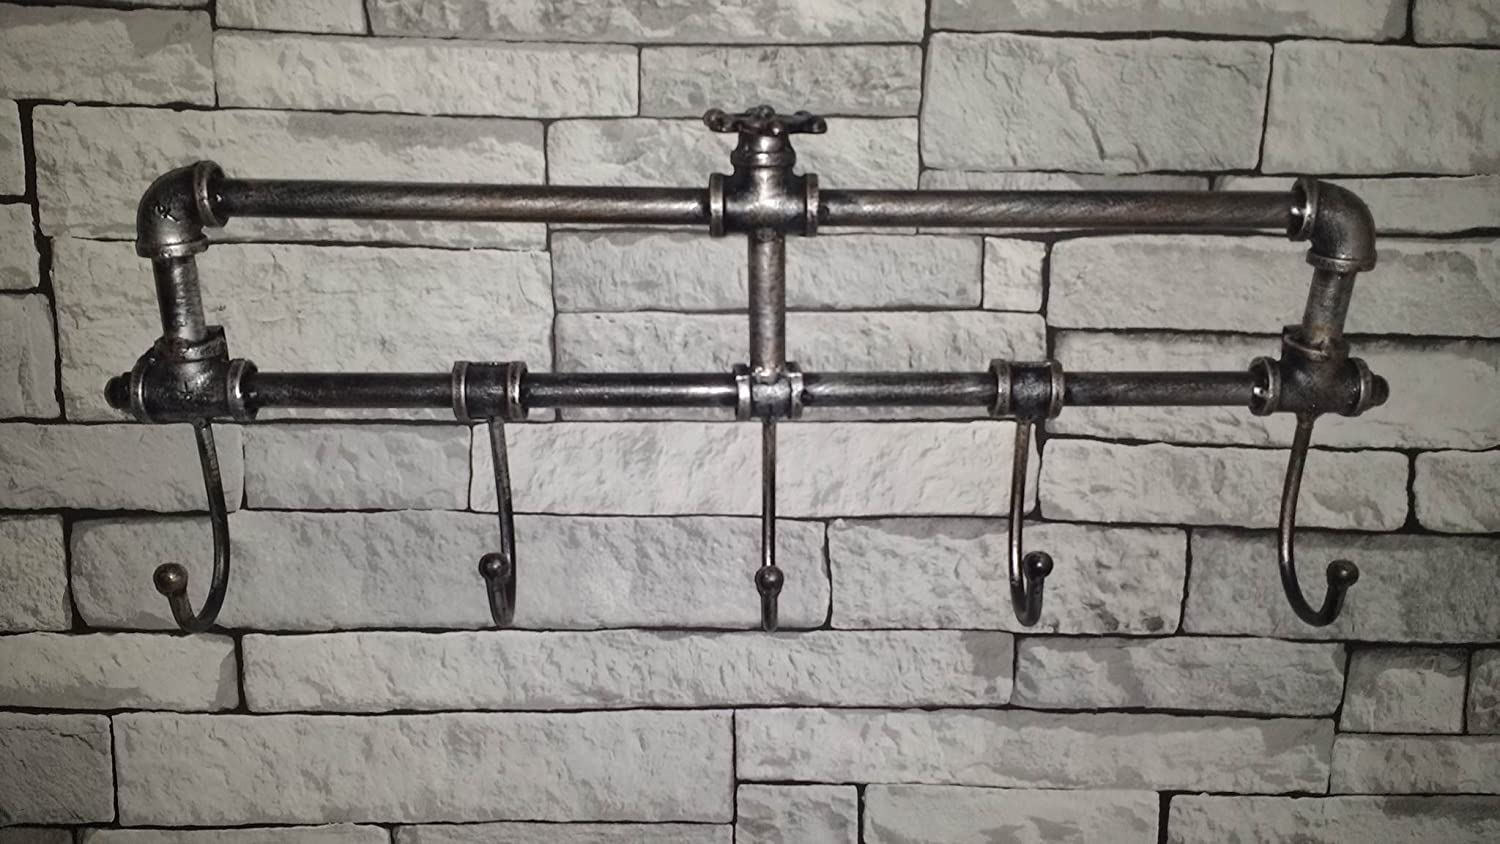 garden mile Distressed Metal Industrial Pipe Work Novelty Coat Rack Towel Rail. Retro Urban Chic 5 Peg Wall Mounted Bedroom Hall Bathroom Towel Rail Garden Mile®